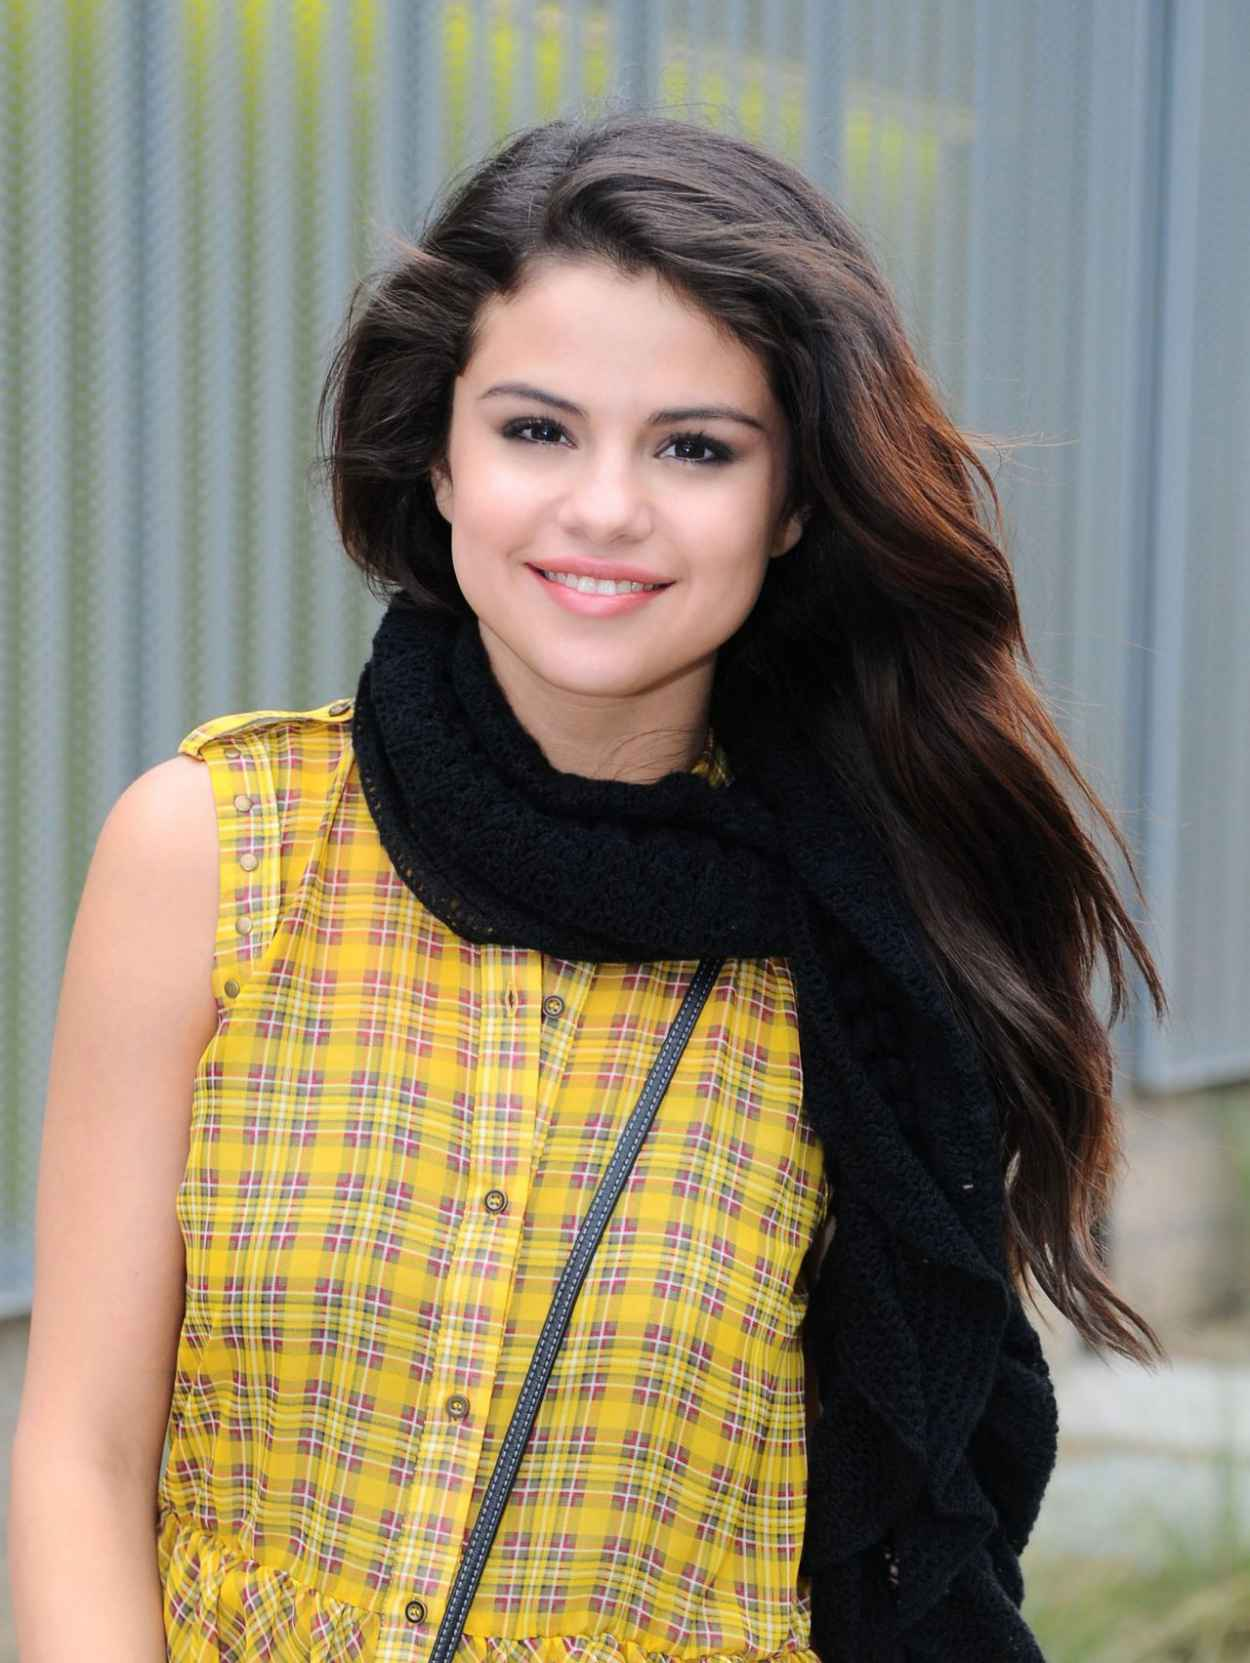 Selena Gomez Photoshoot - 177 Photos From Dream Out Loud Fall 2015 Collection-1